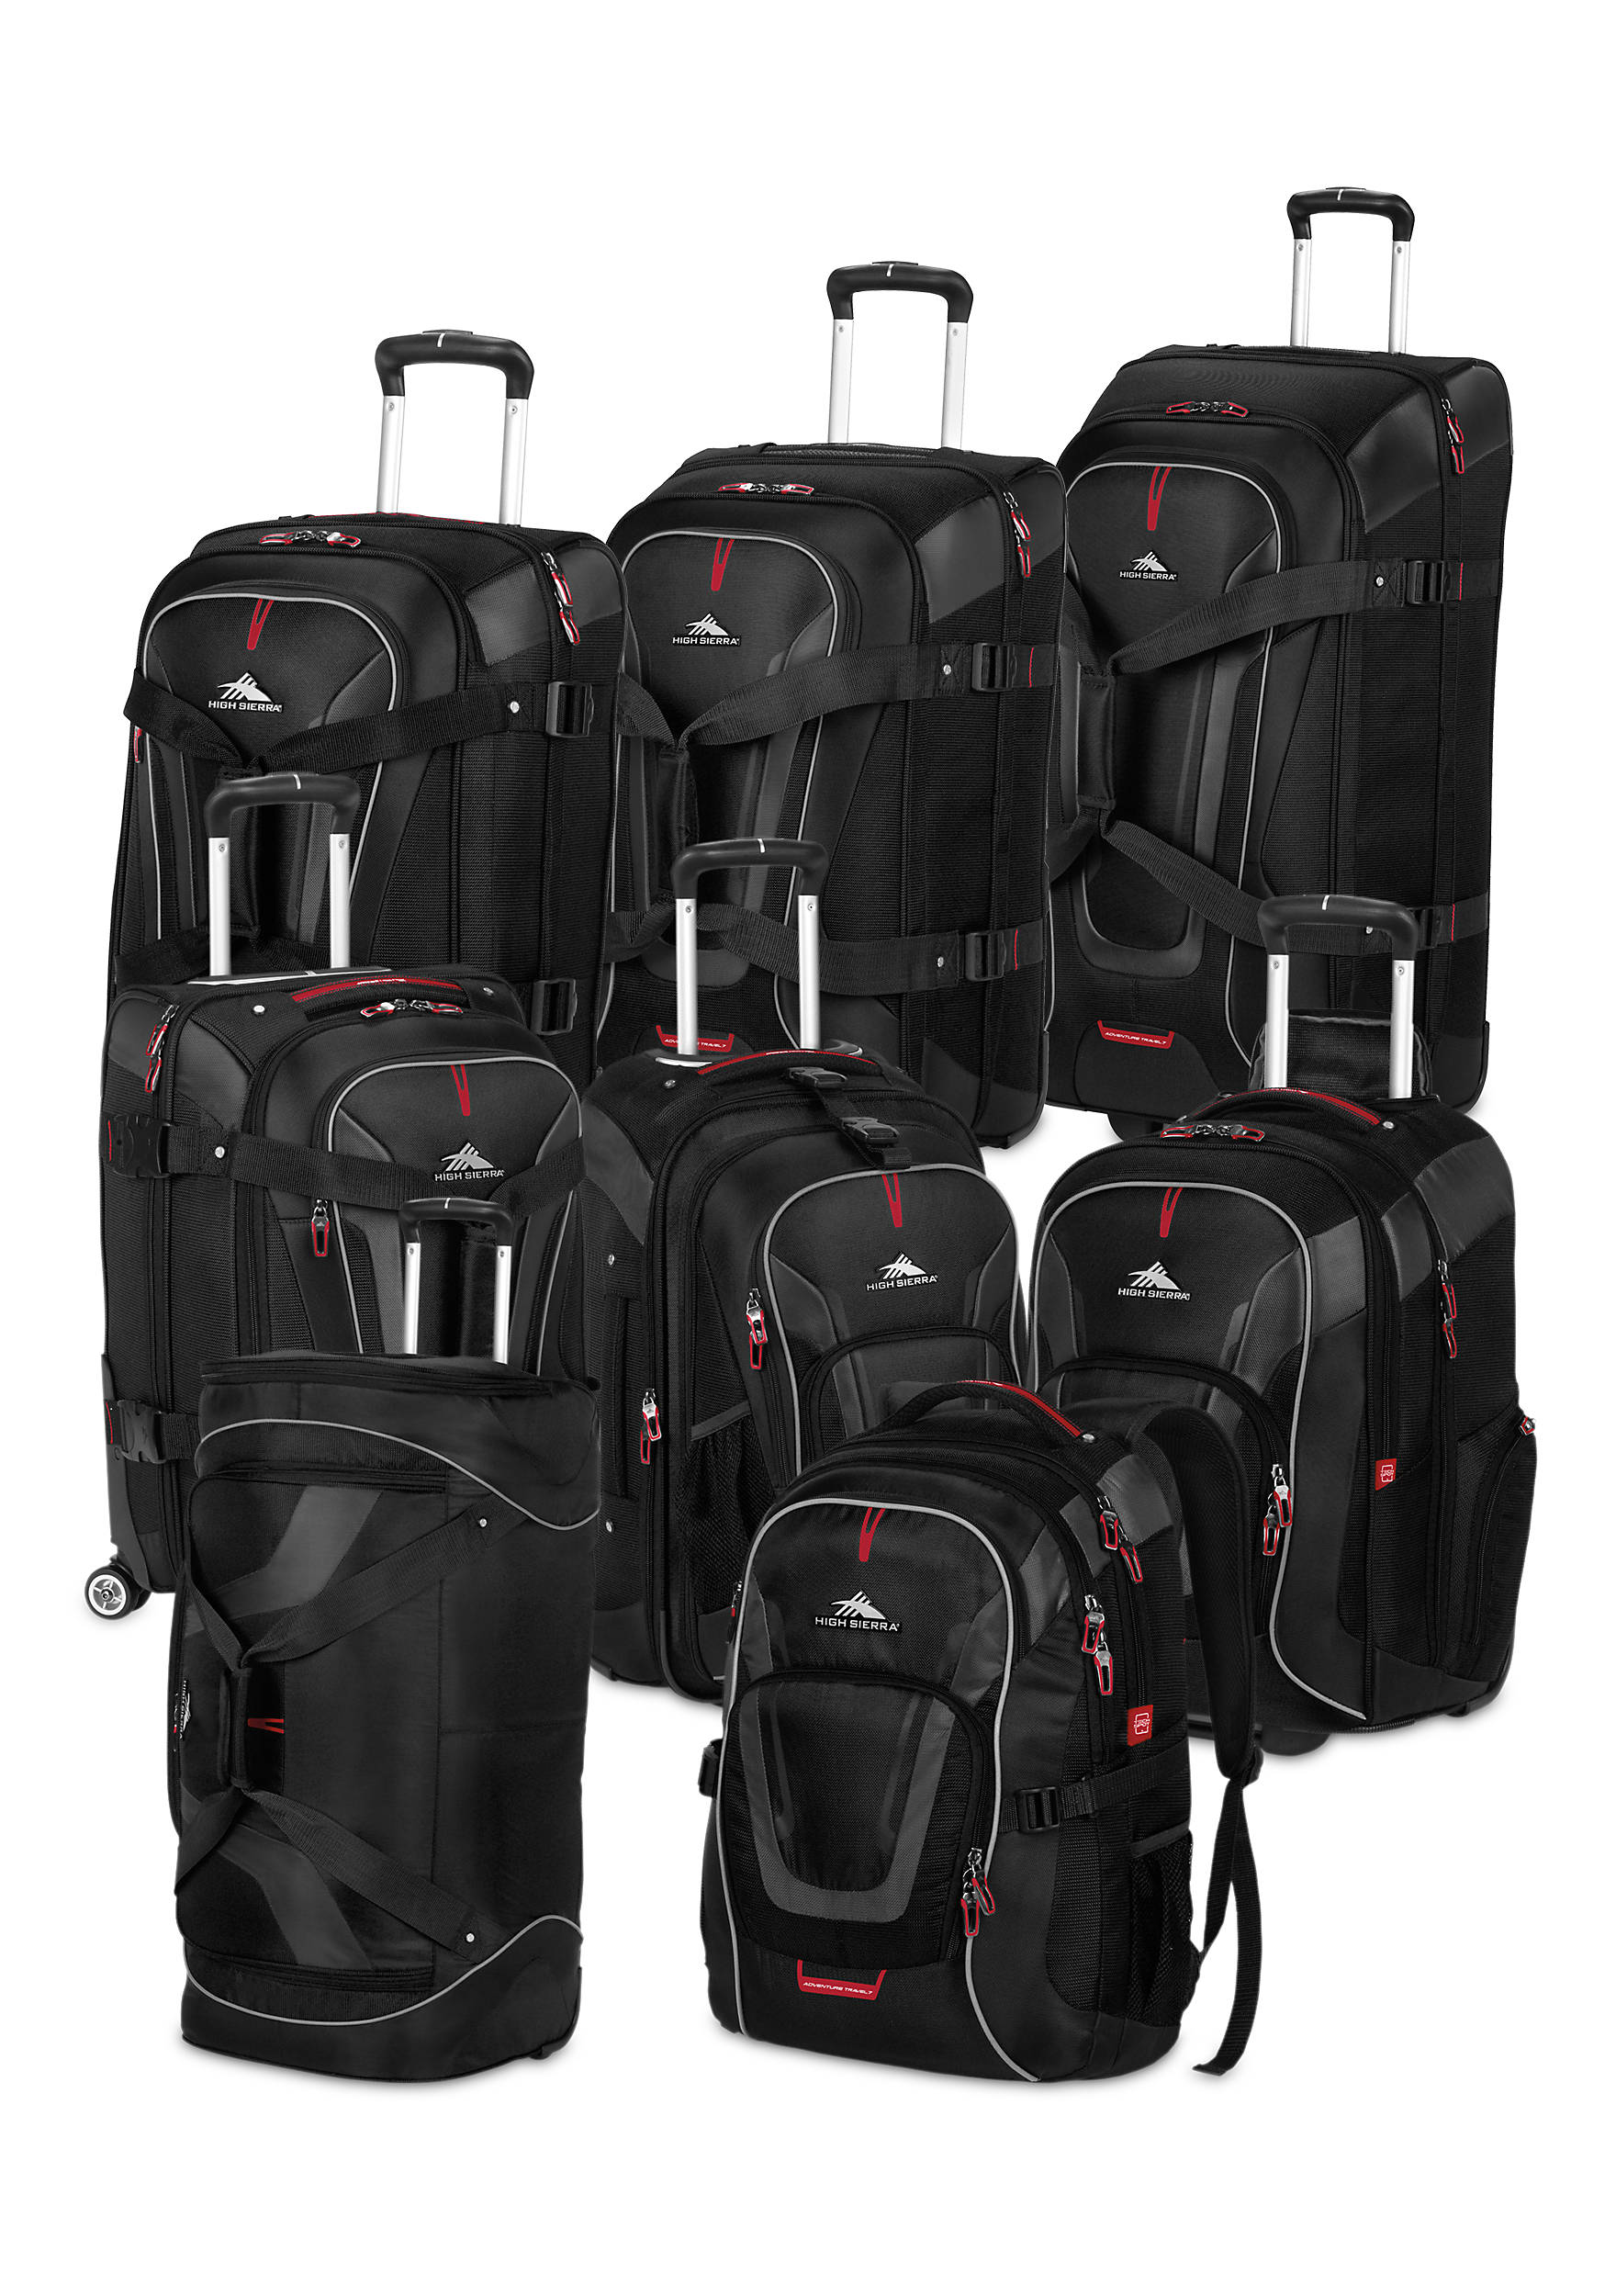 ... High Sierra Adventure Travel 7 Luggage Collection - Black c01de724160db